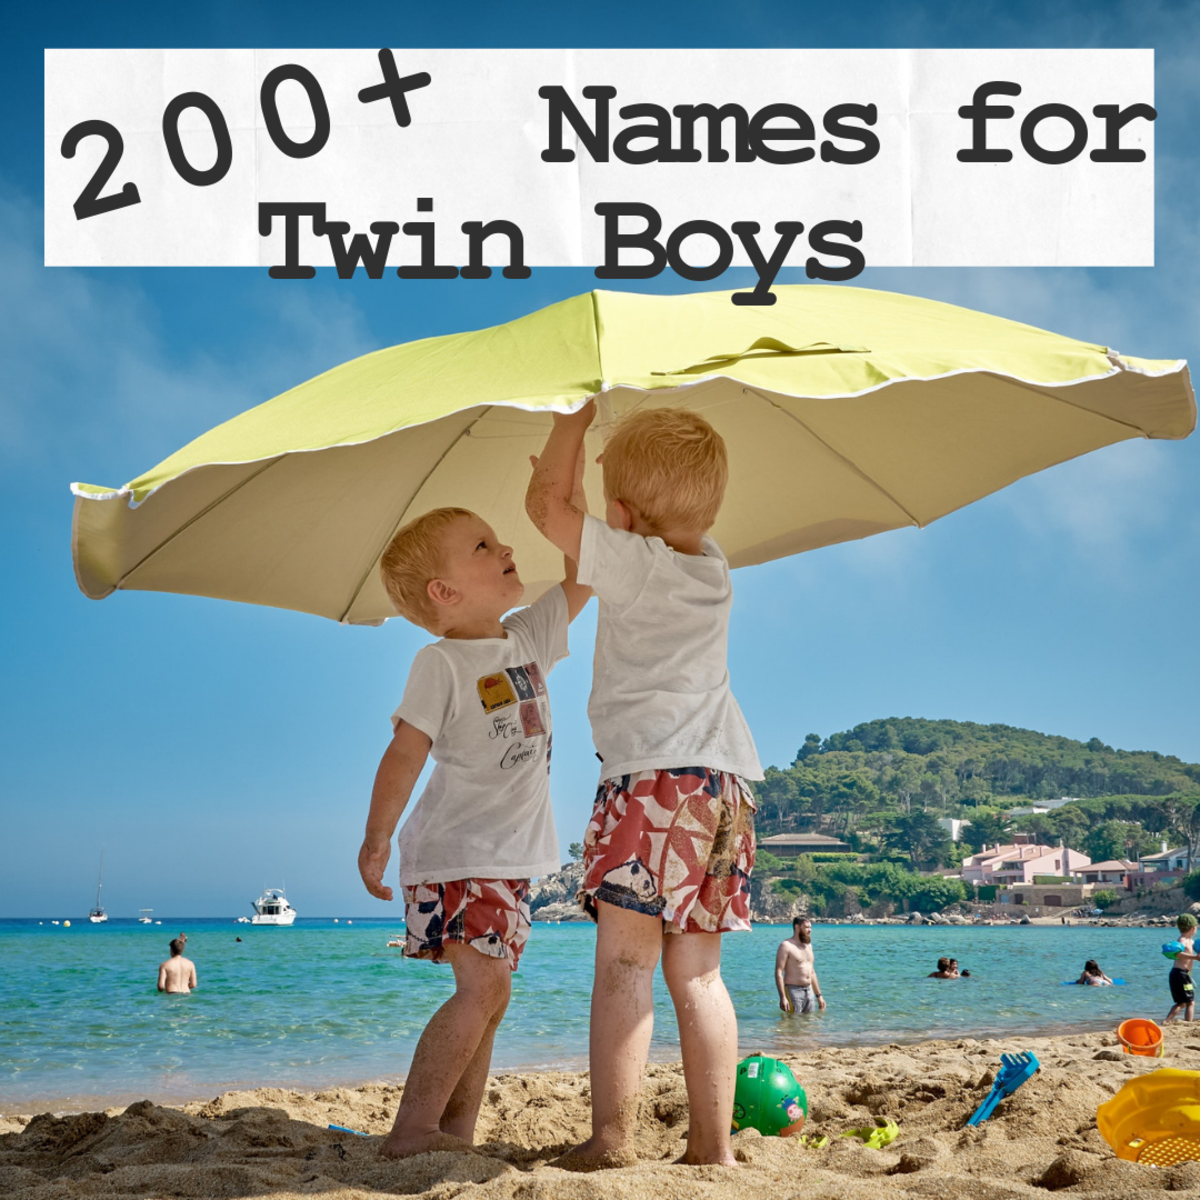 200+ Names for Twin Boys